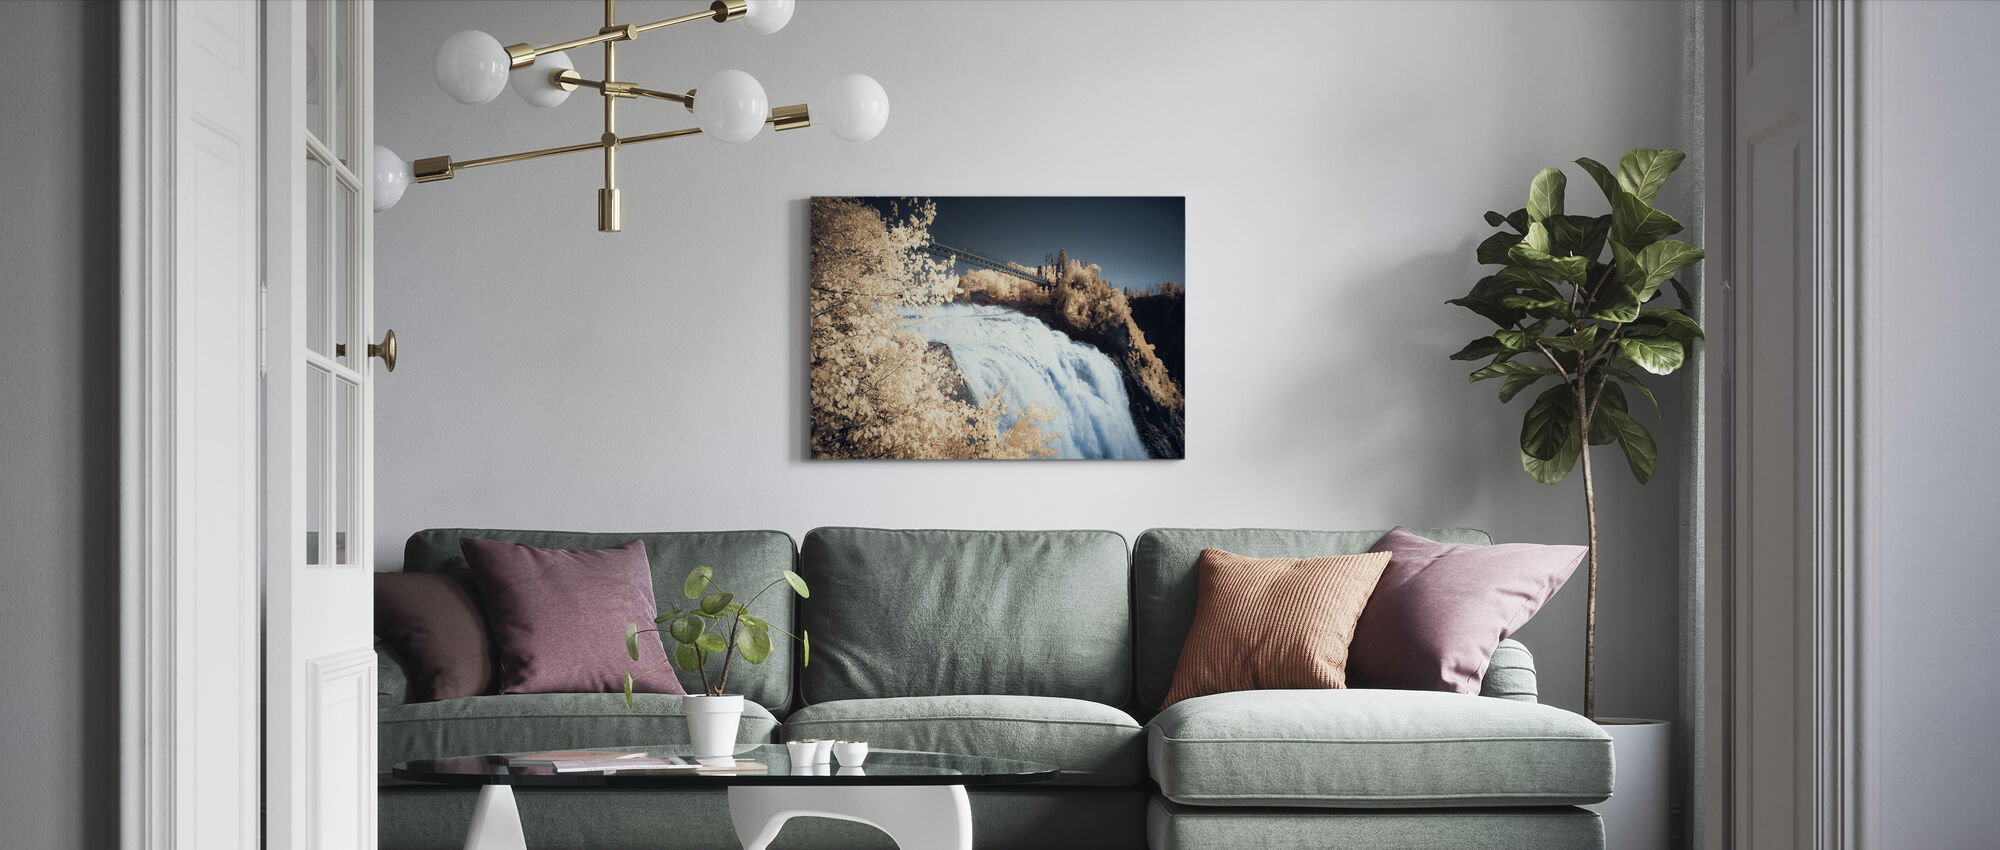 Passage High above the Clouds - Canvas print - Living Room